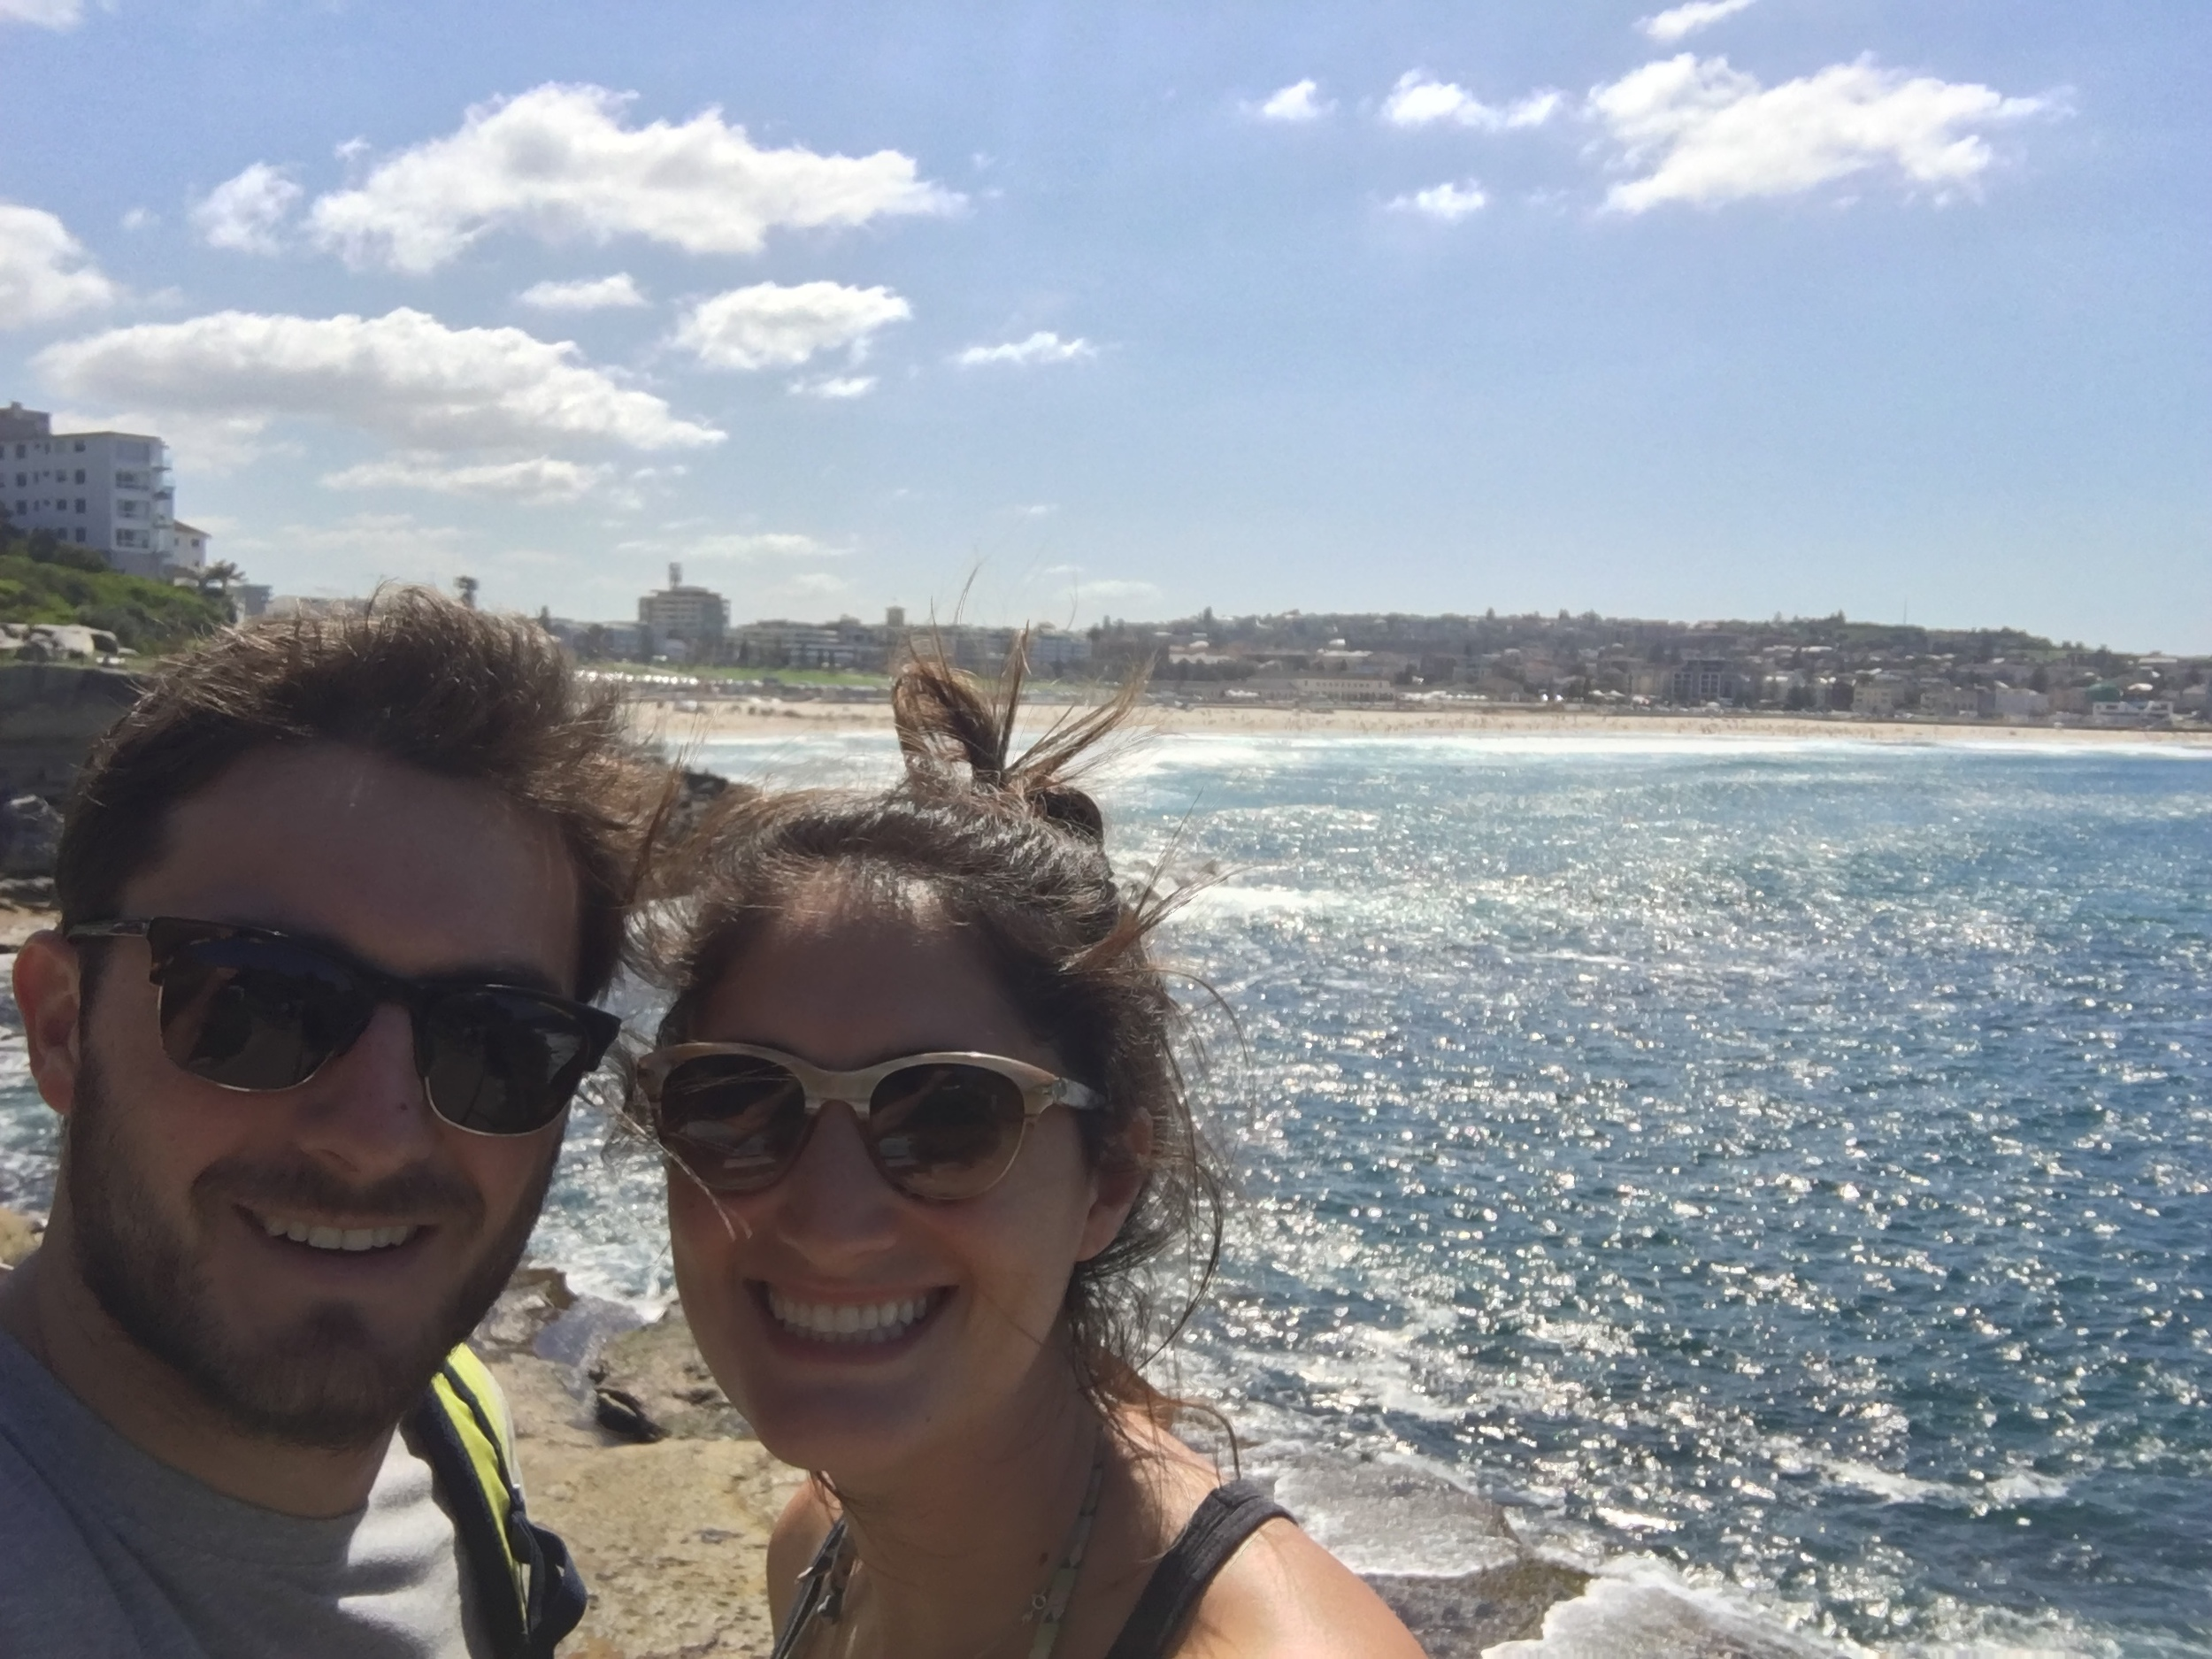 Walking to Coogee